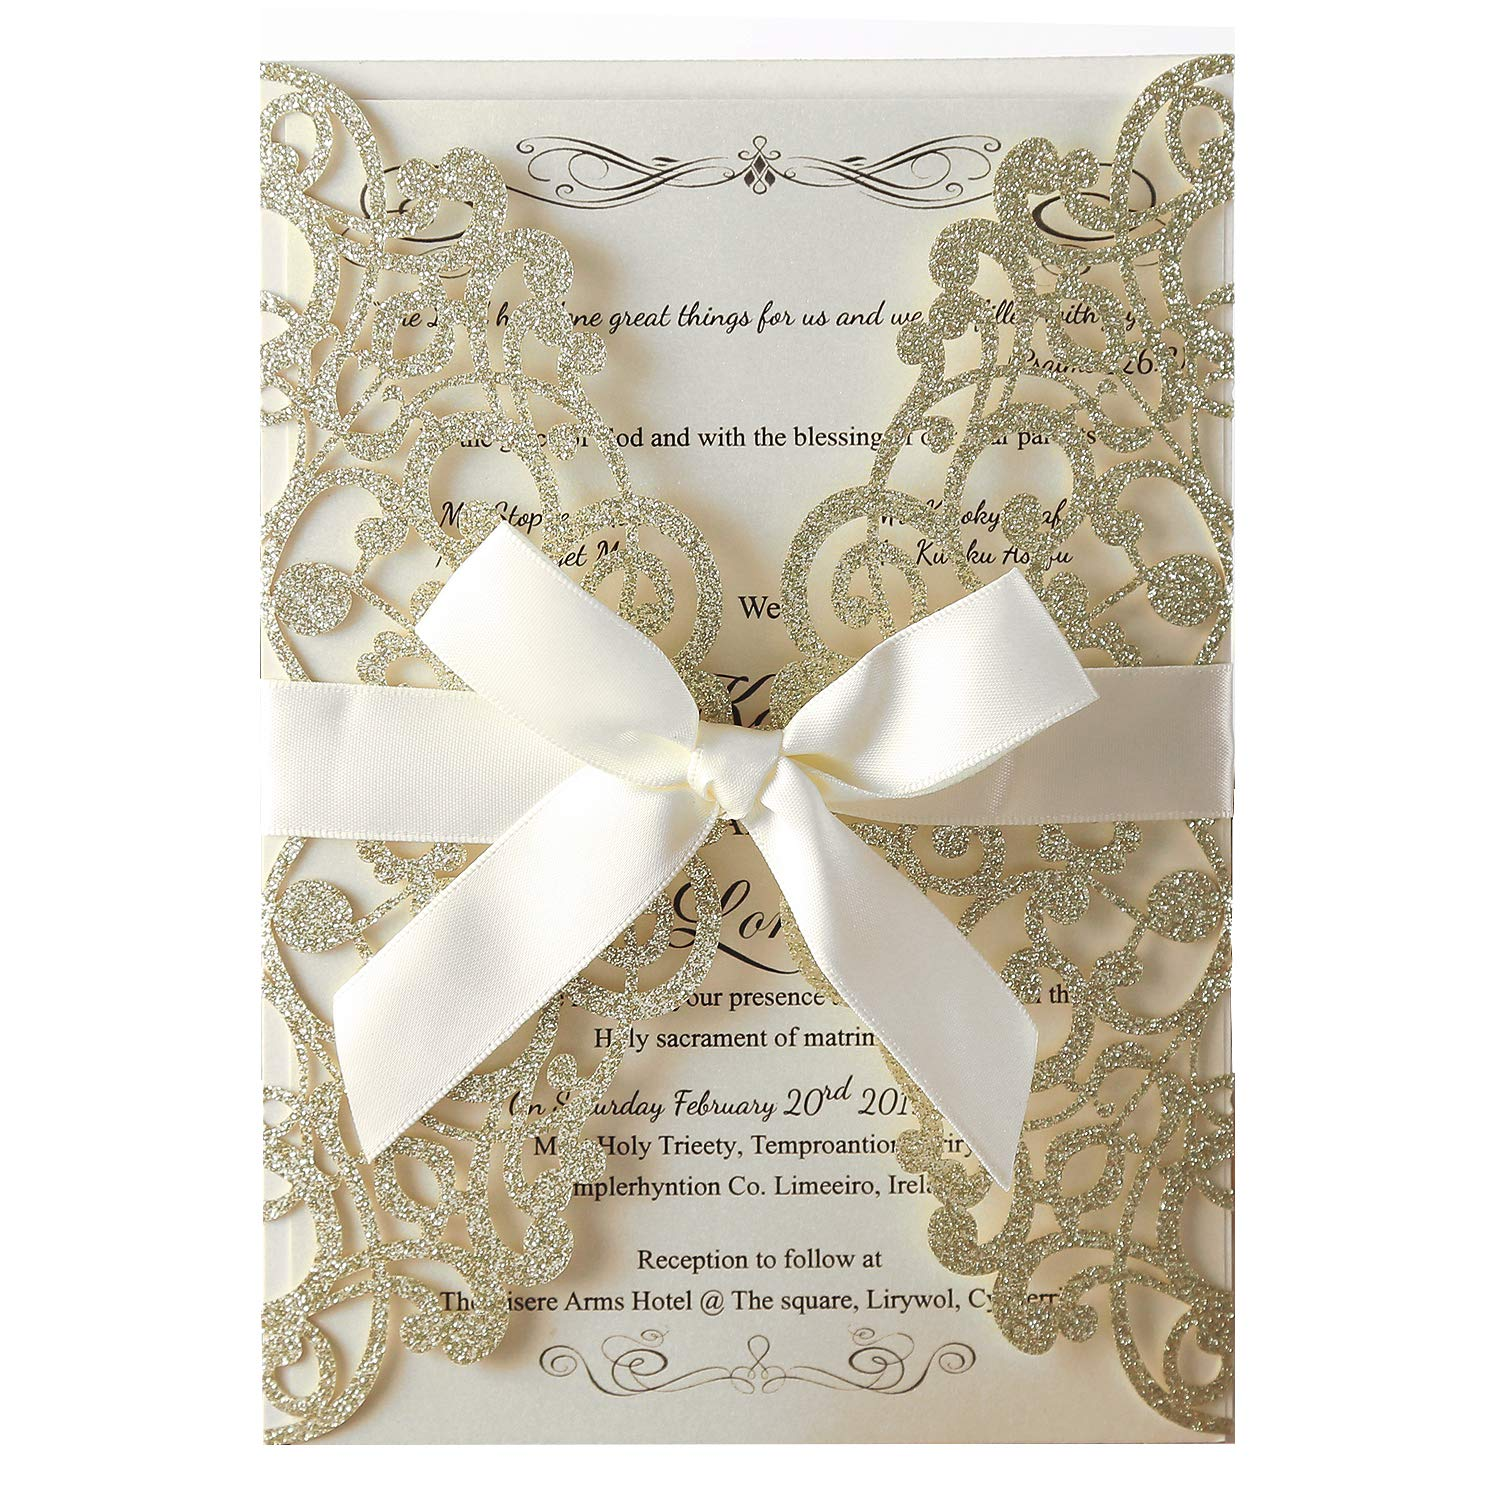 Hosmsua 20x Laser Cut Flora Lace Invitation Cards with Blank Inner Sheets and Envelopes for Wedding Invitations Bridal Shower Engagement Birthday Baby Shower (Champagne Glitter)